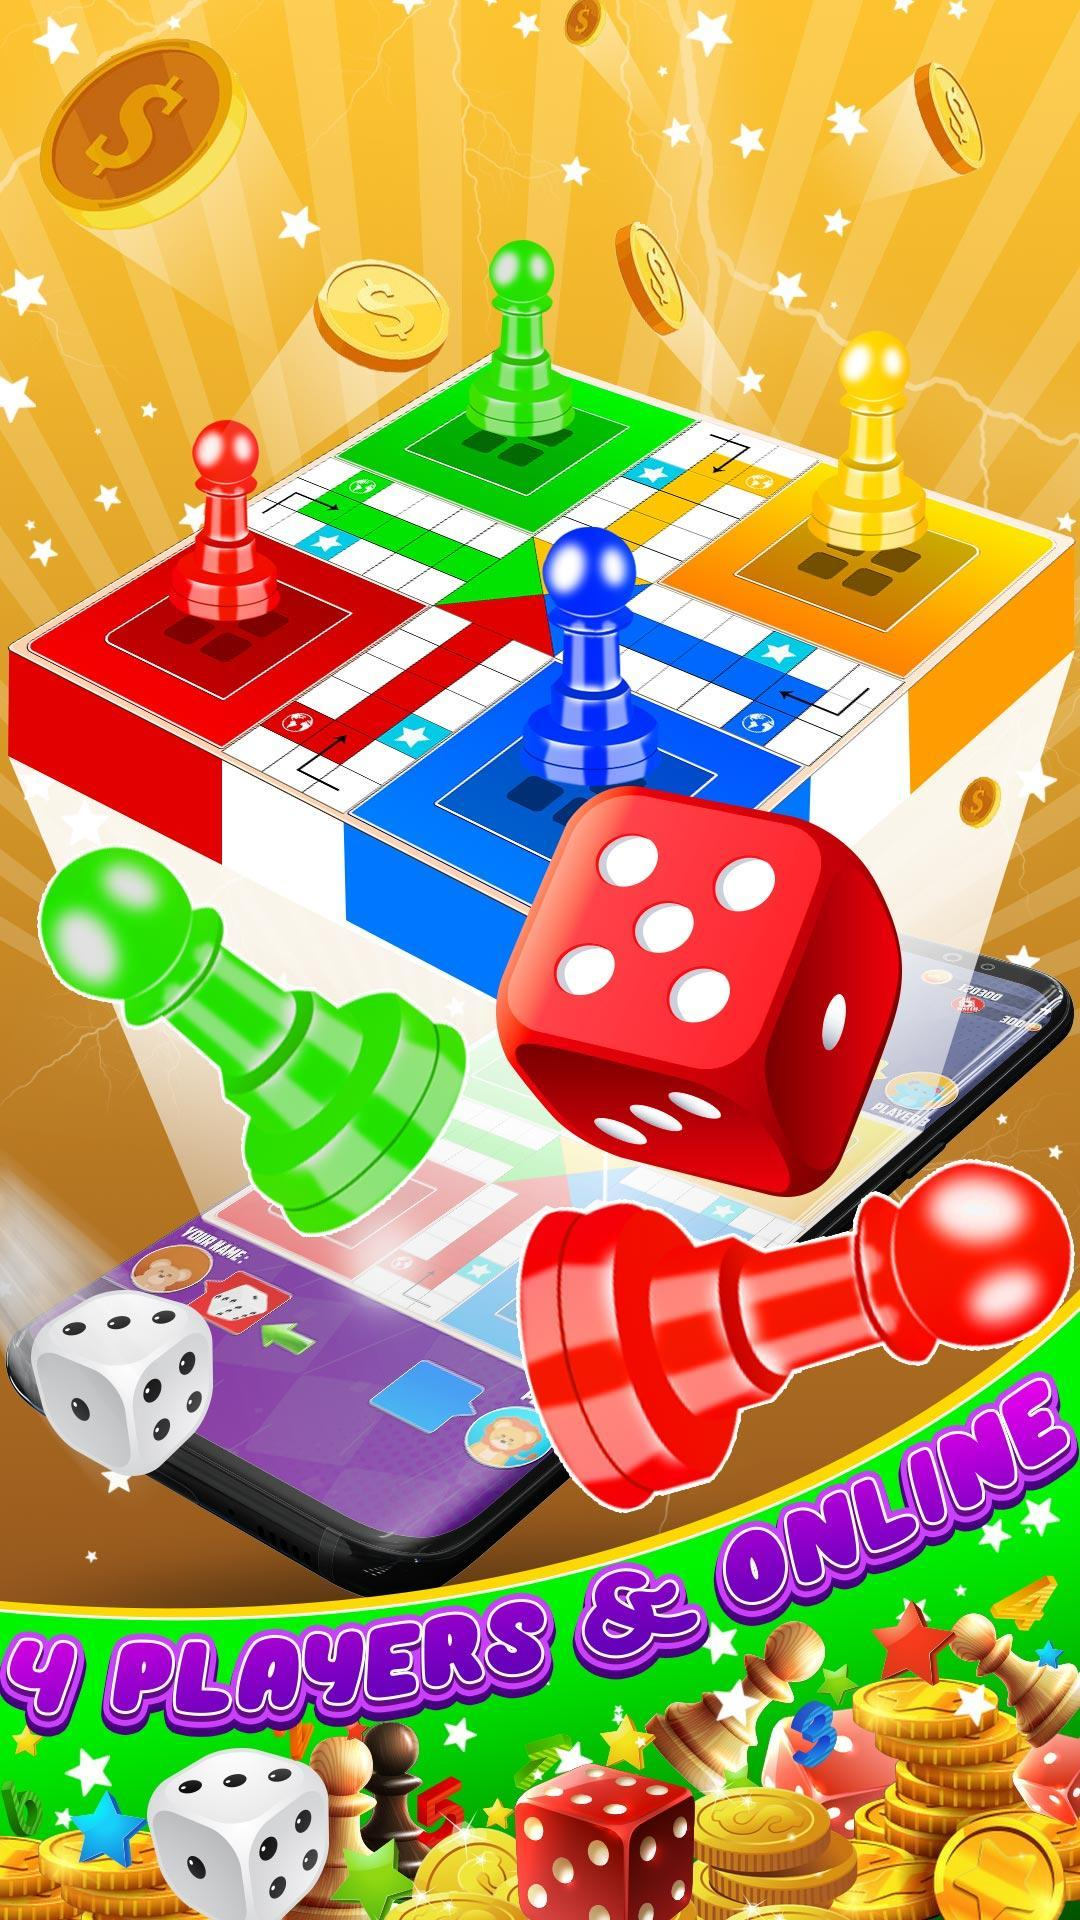 King of Ludo Dice Game with Free Voice Chat 2020 1.5.2 Screenshot 4